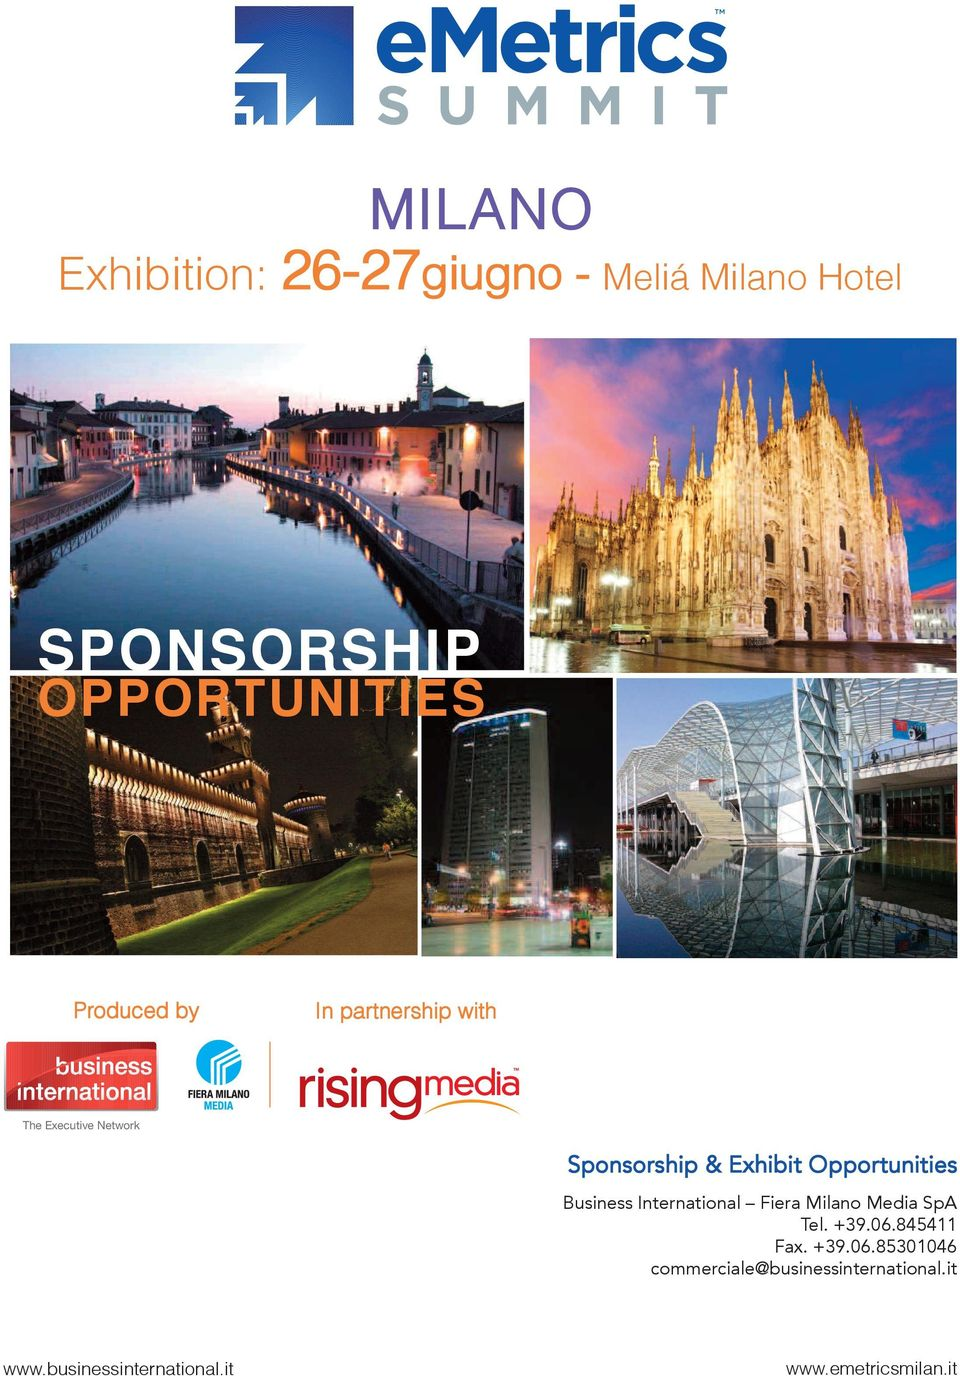 International Fiera Milano Media SpA Tel. +39.06.